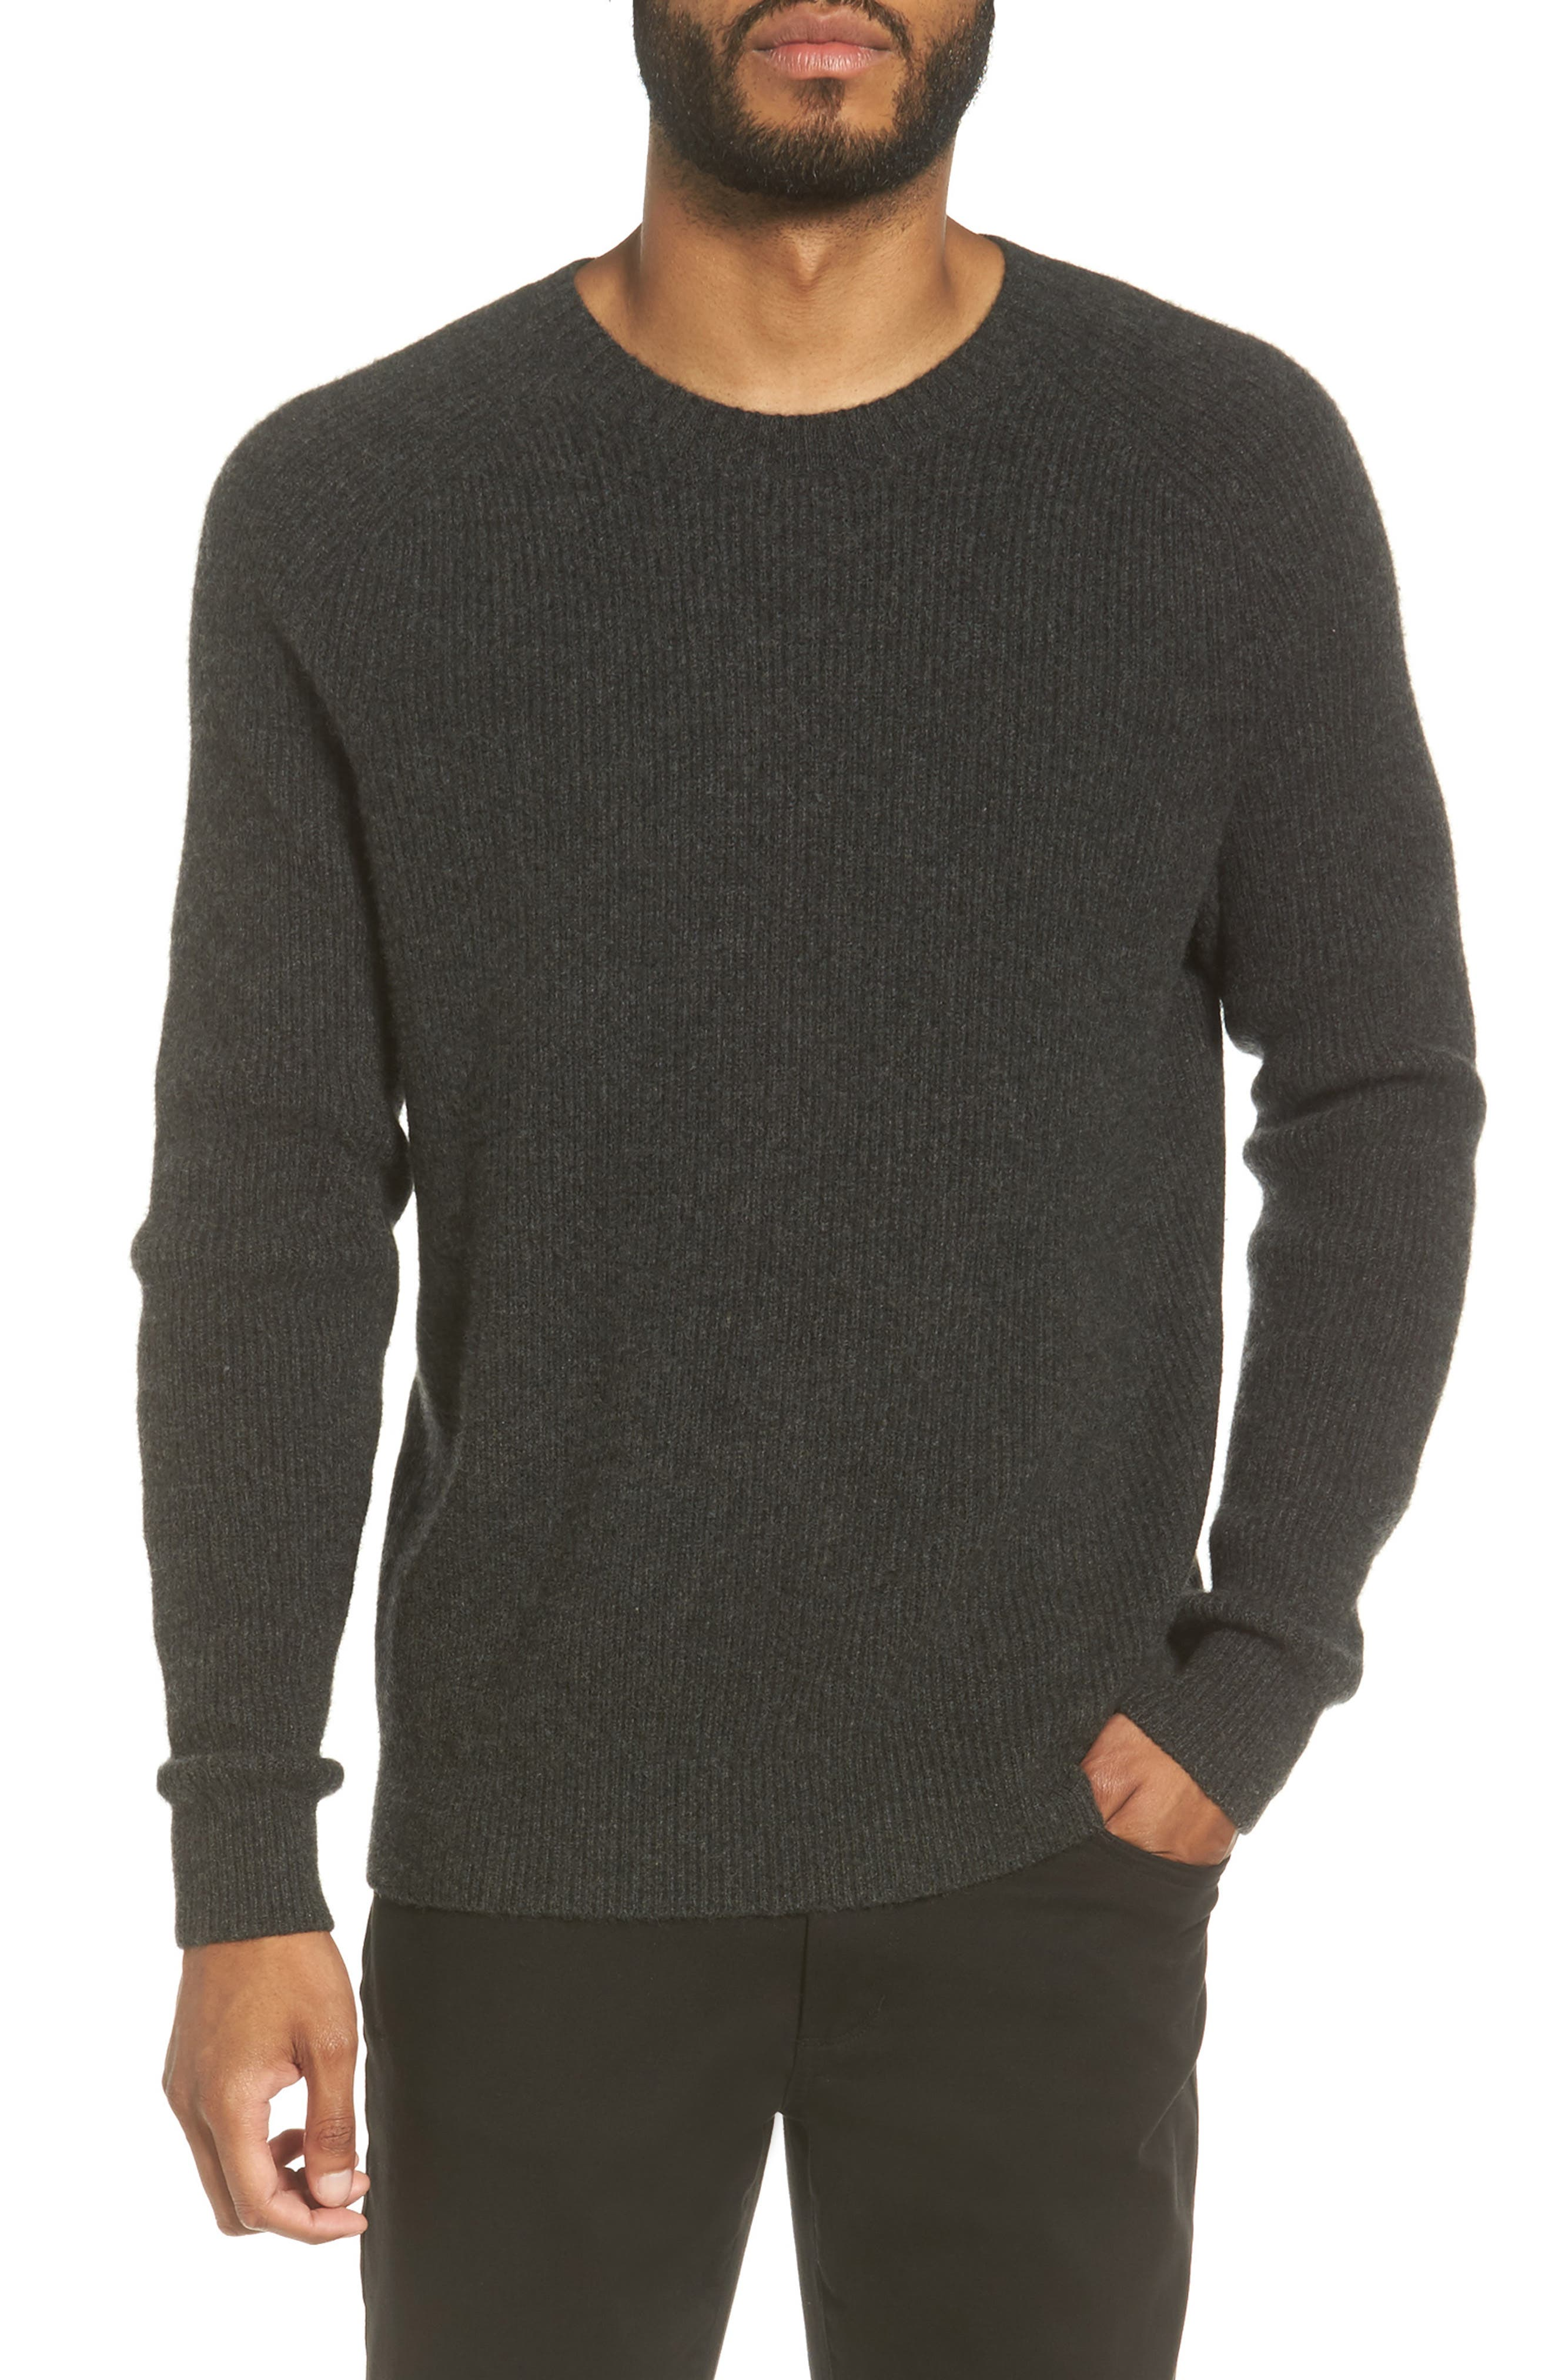 Ribbed Wool & Cashmere Raglan Sweater,                             Main thumbnail 1, color,                             Heather Carbon